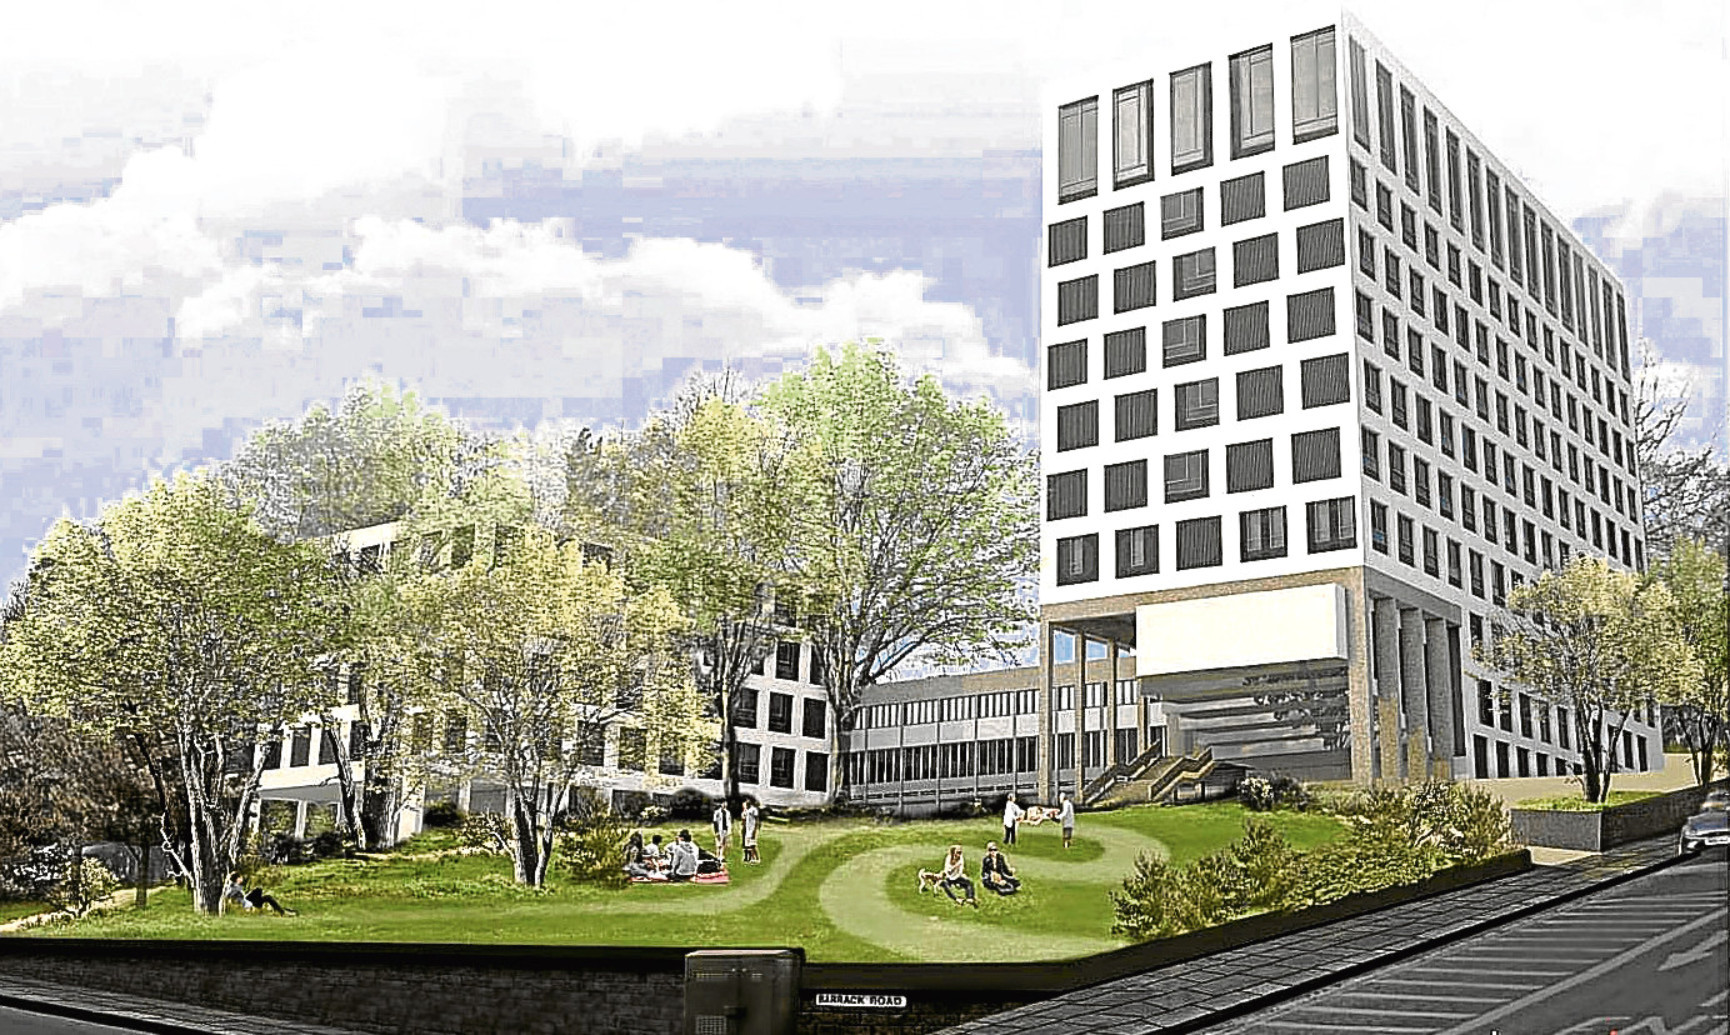 The vision for the development on the old Dundee College campus.